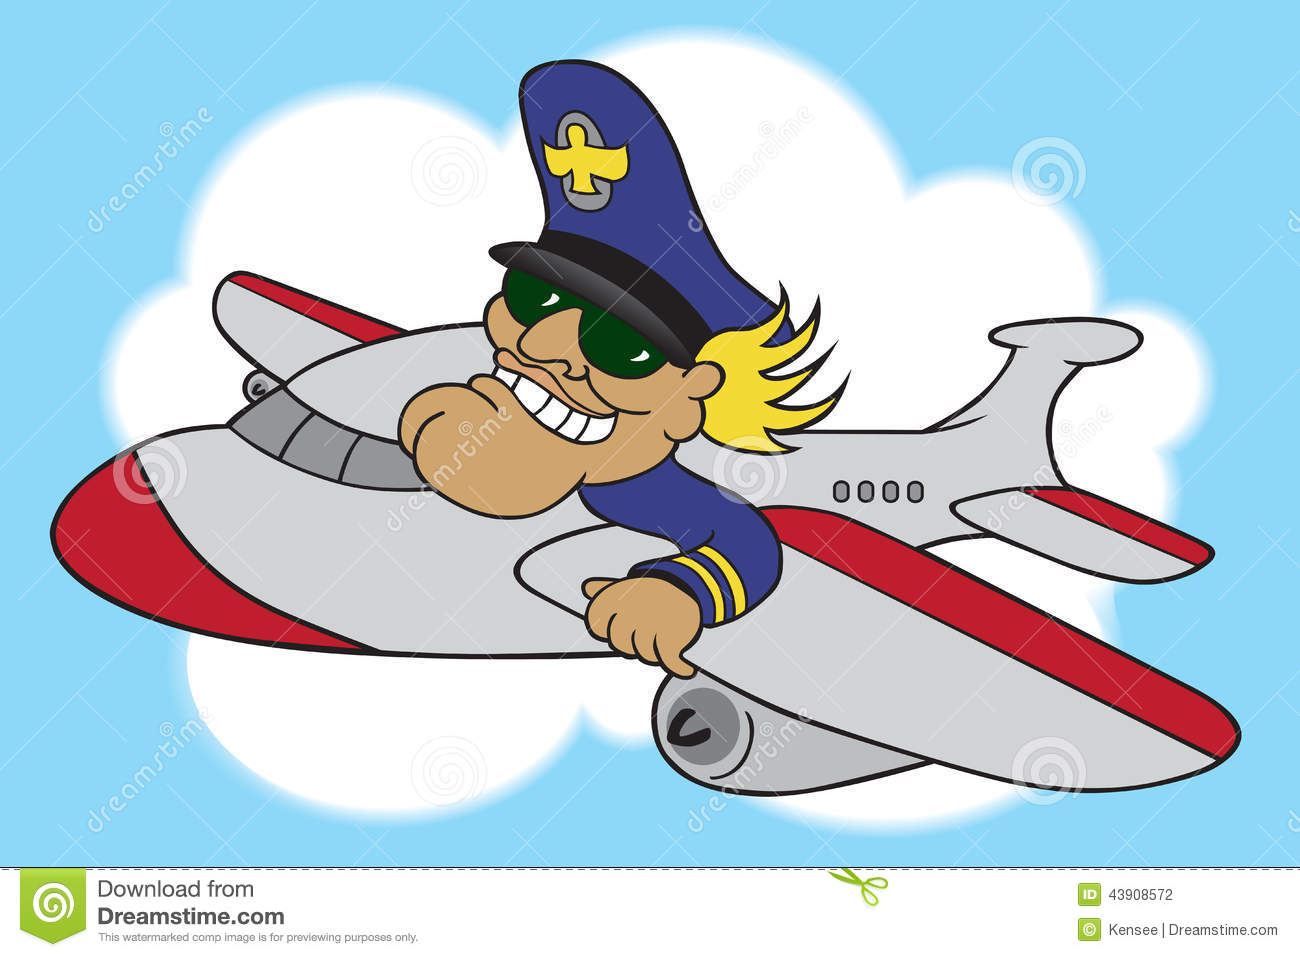 Cartoon Airline Pilot Stock Vector Image 43908572